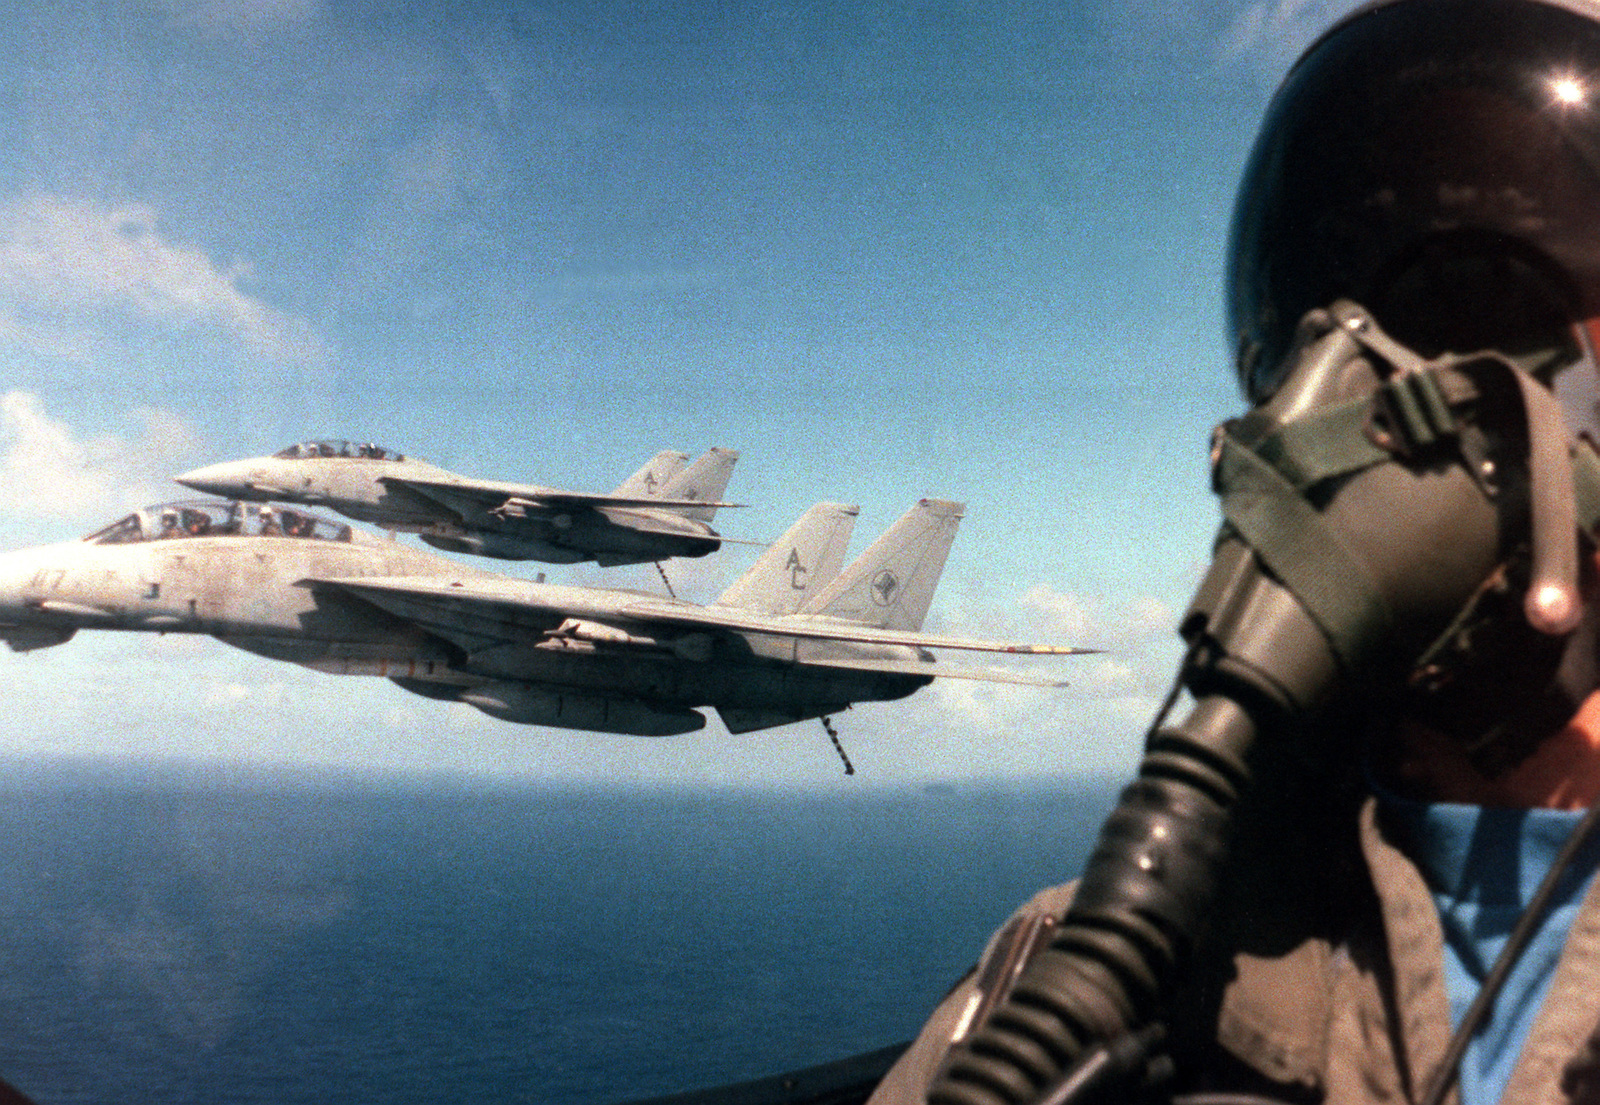 A close-up view of the pilot of an A-7E Corsair II aircraft, as he pilots his plane alongside two Fighter Squadron 14 (VF-14) F-14A Tomcat aircraft. The planes are returning to the aircraft carrier USS JOHN F. KENNEDY (CV 67)